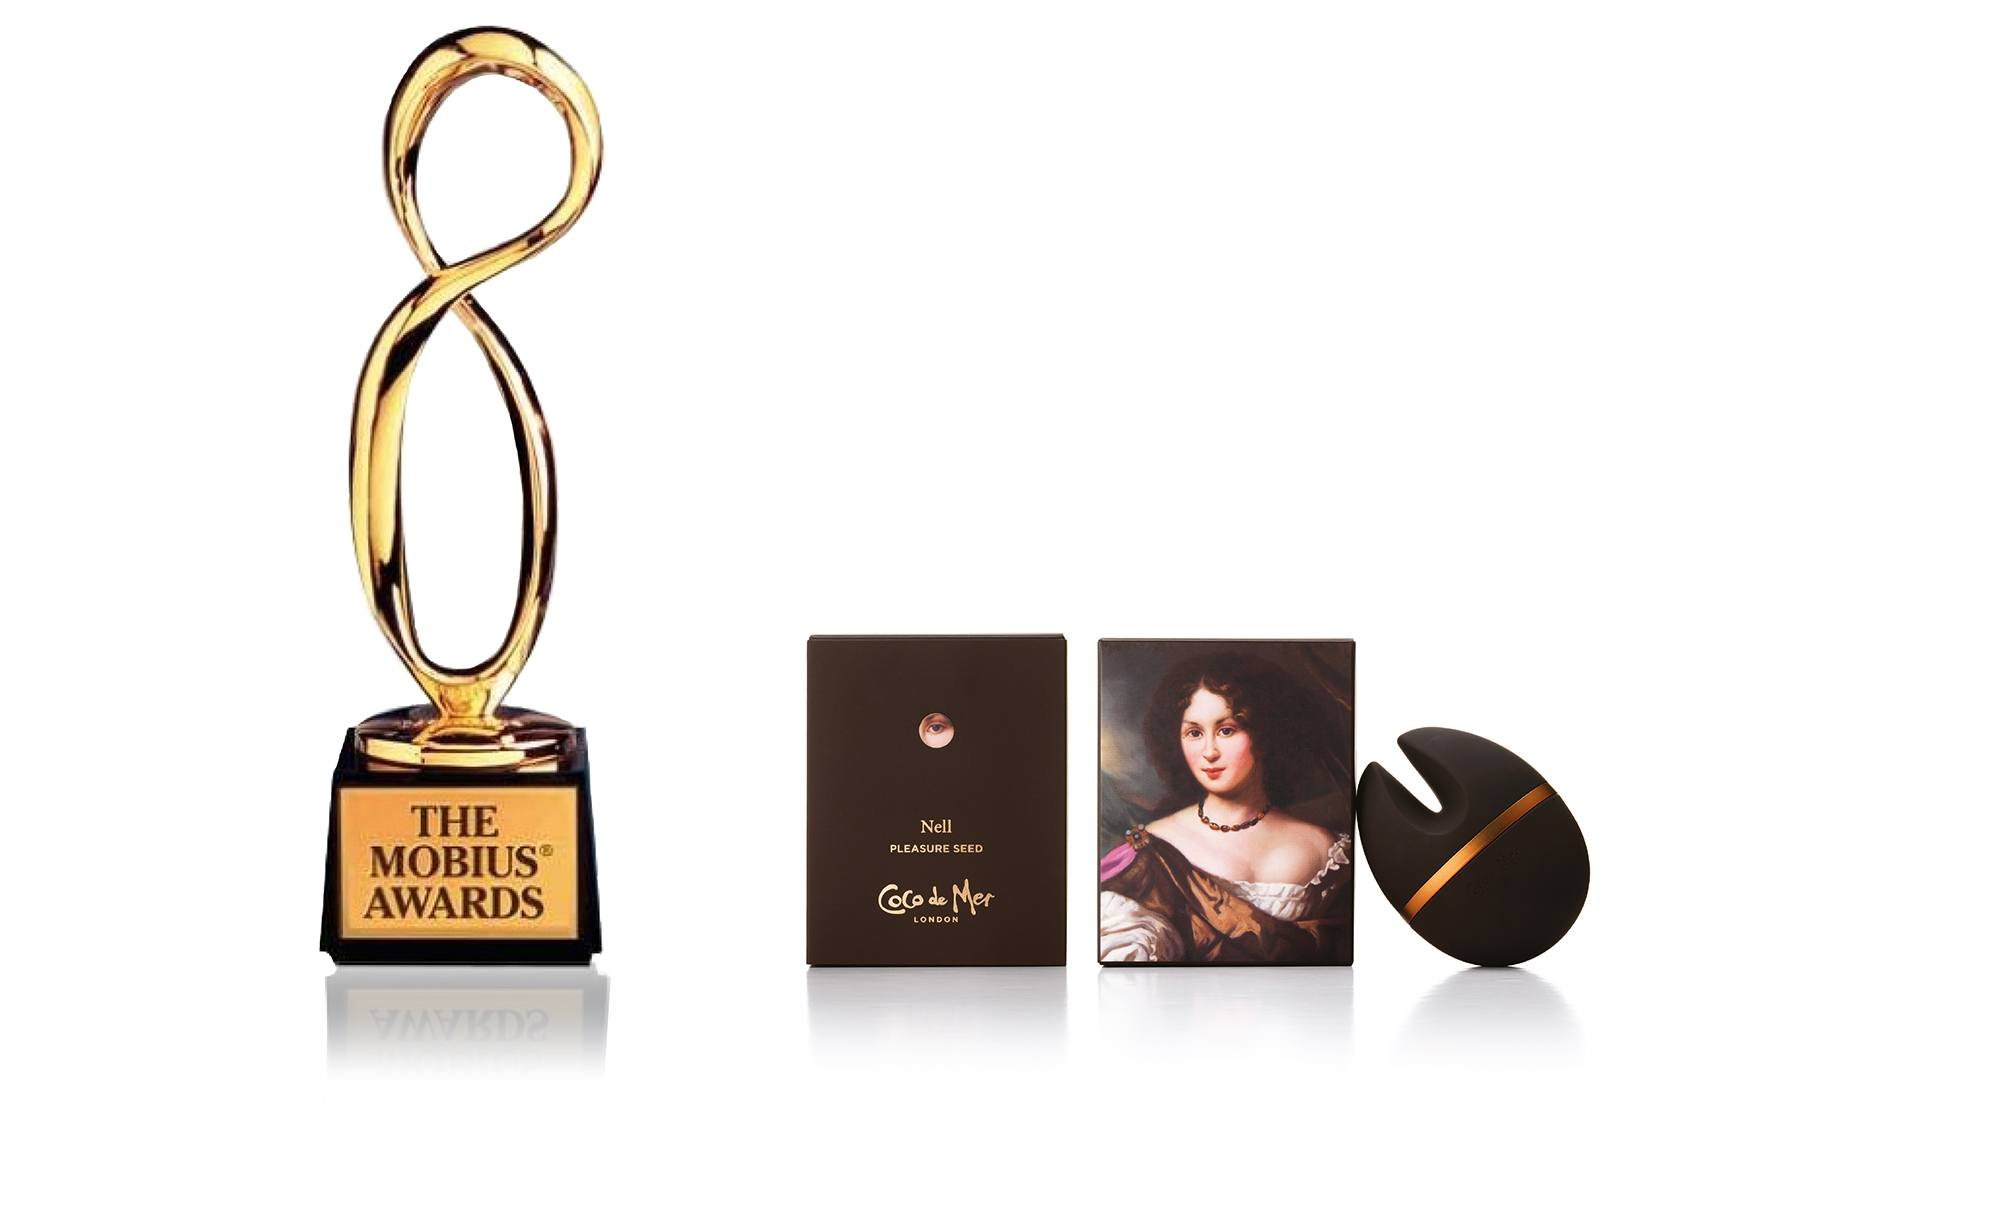 mobius awards win statue coco de mer packaging boxes and dildo toy